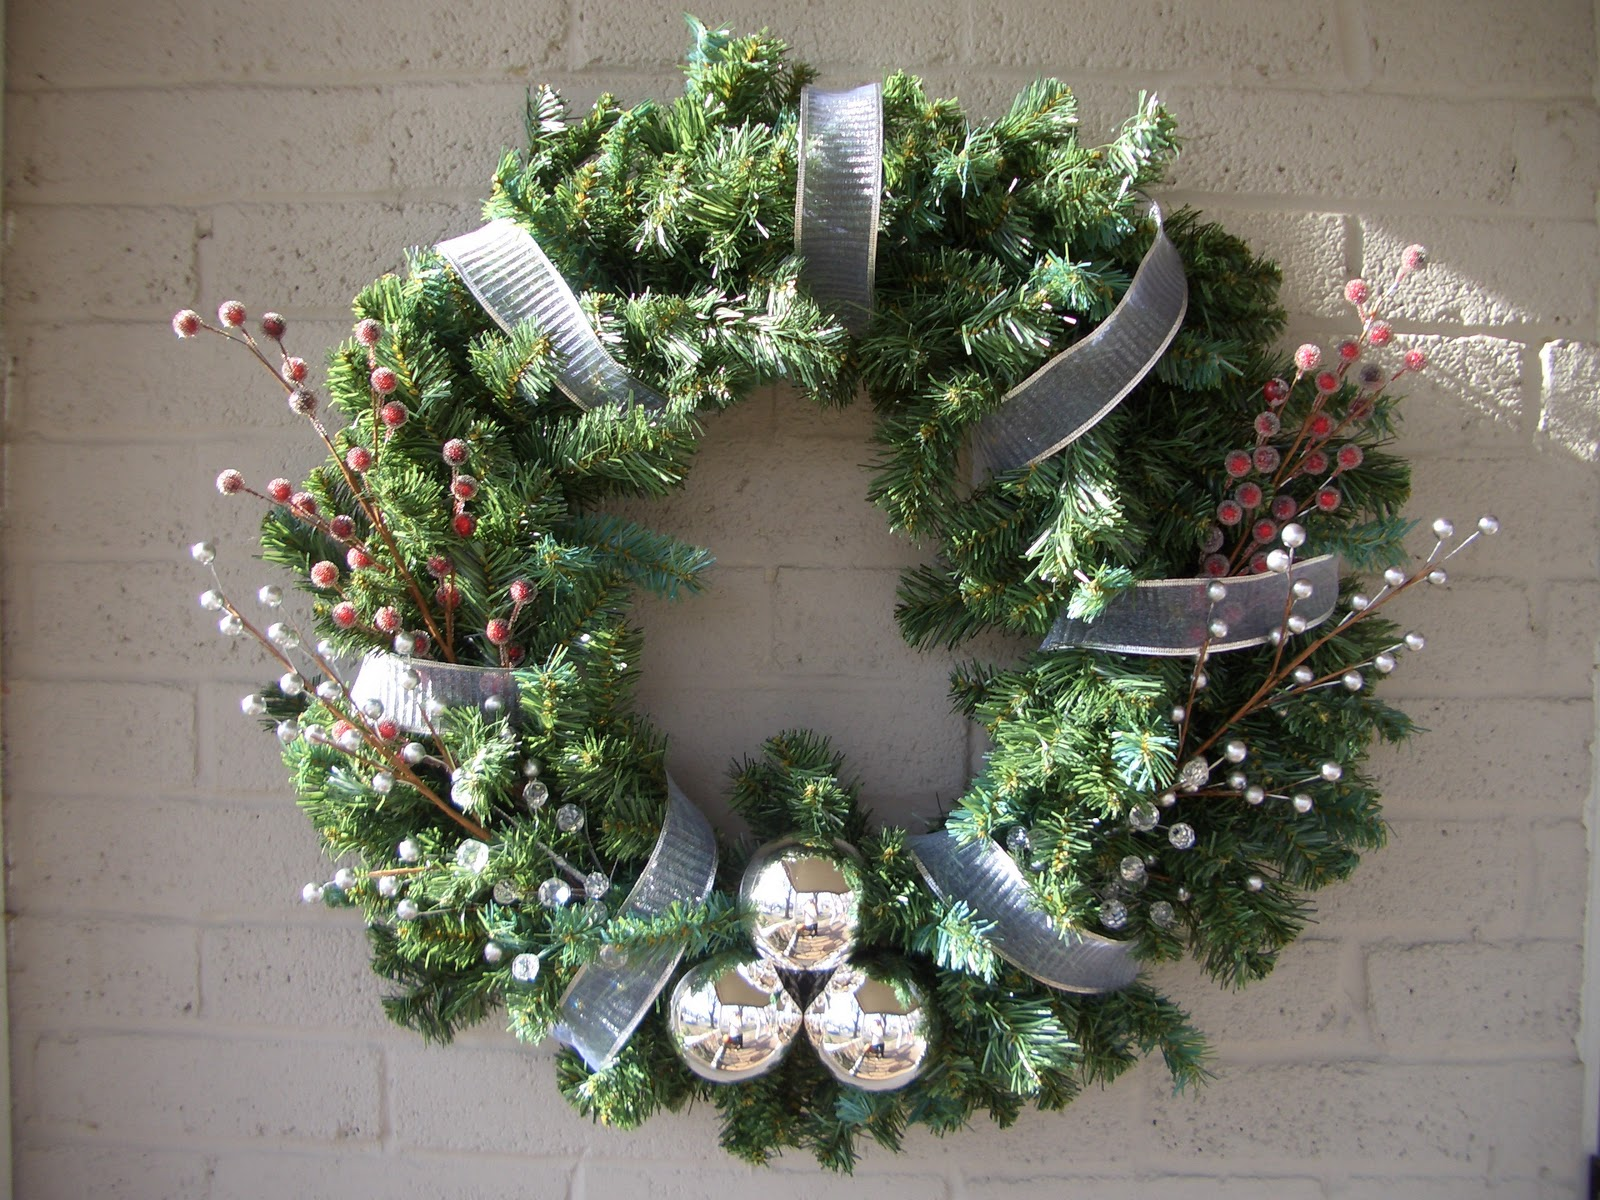 Cool home creations christmas decor 2010 greenery wreath - Decoration noel exterieur a fabriquer ...